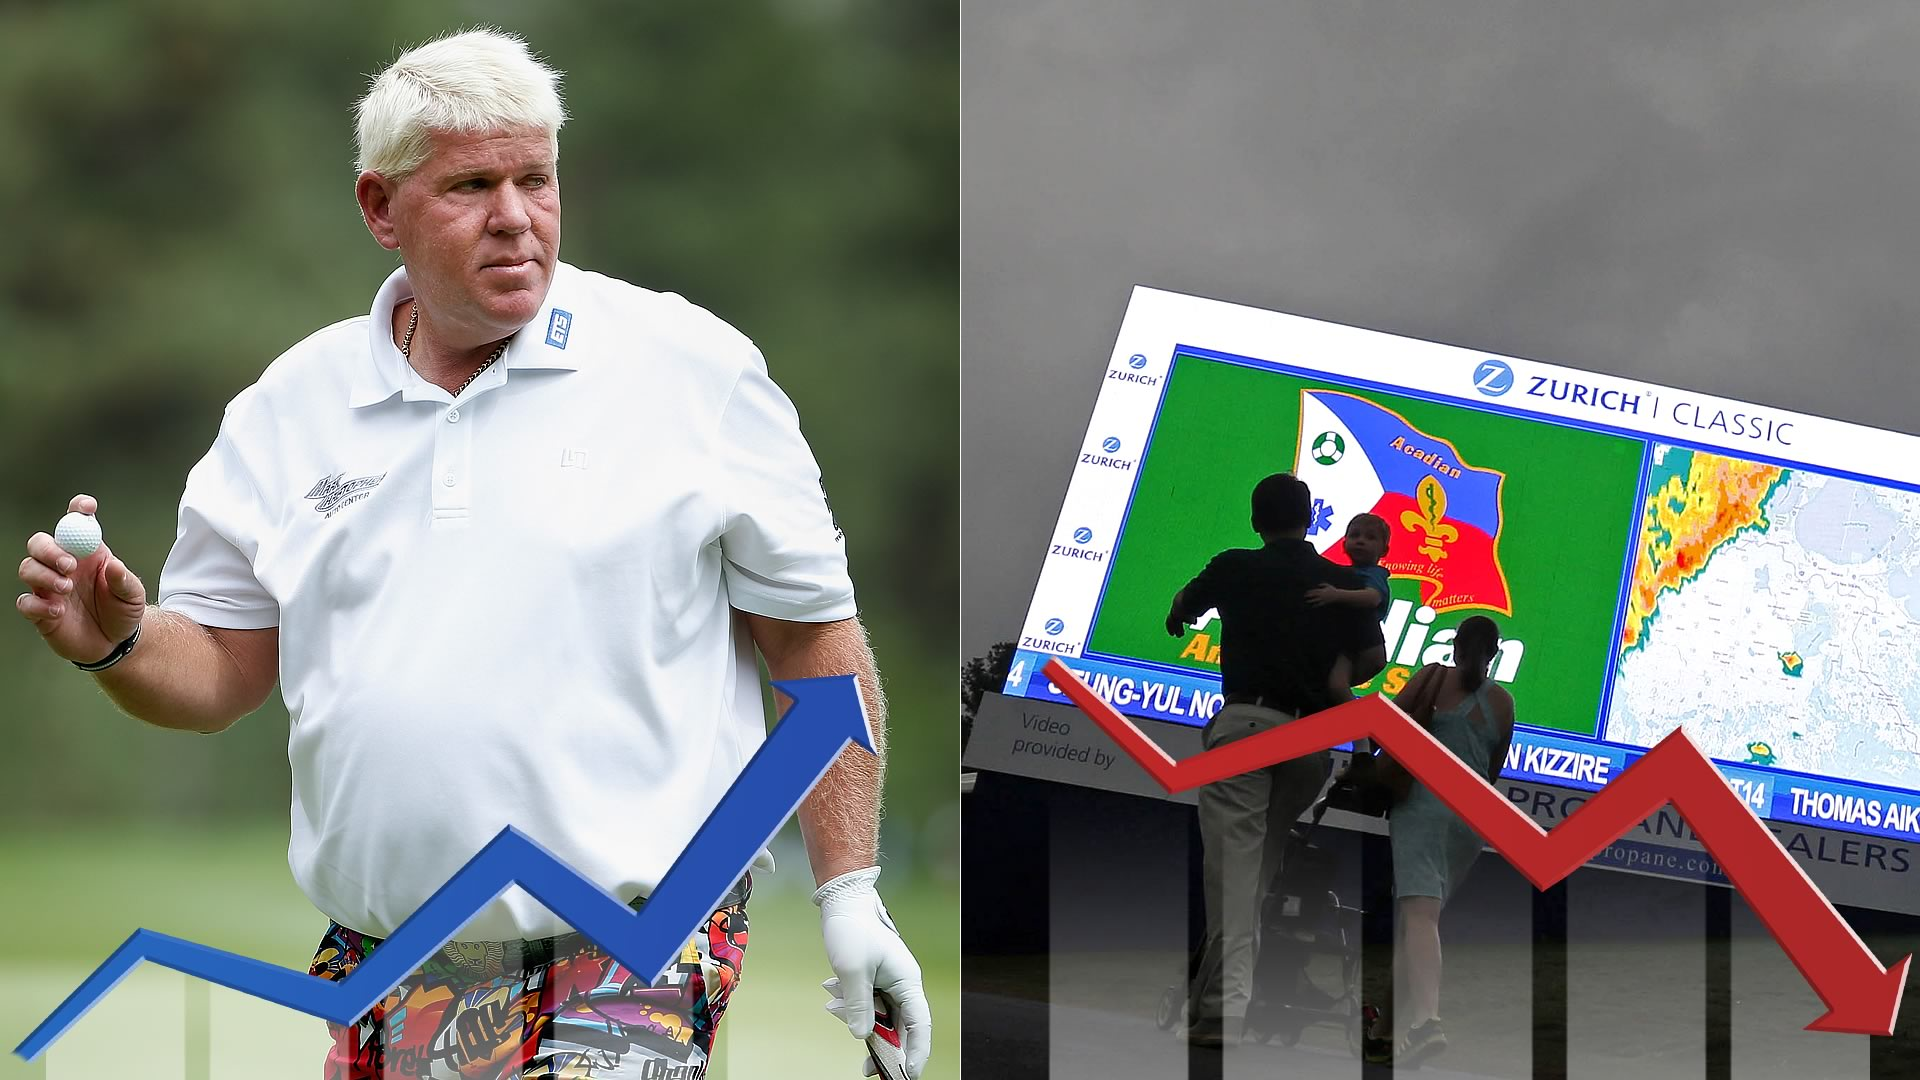 Stock Watch: Turning 50 a boost to John Daly's career